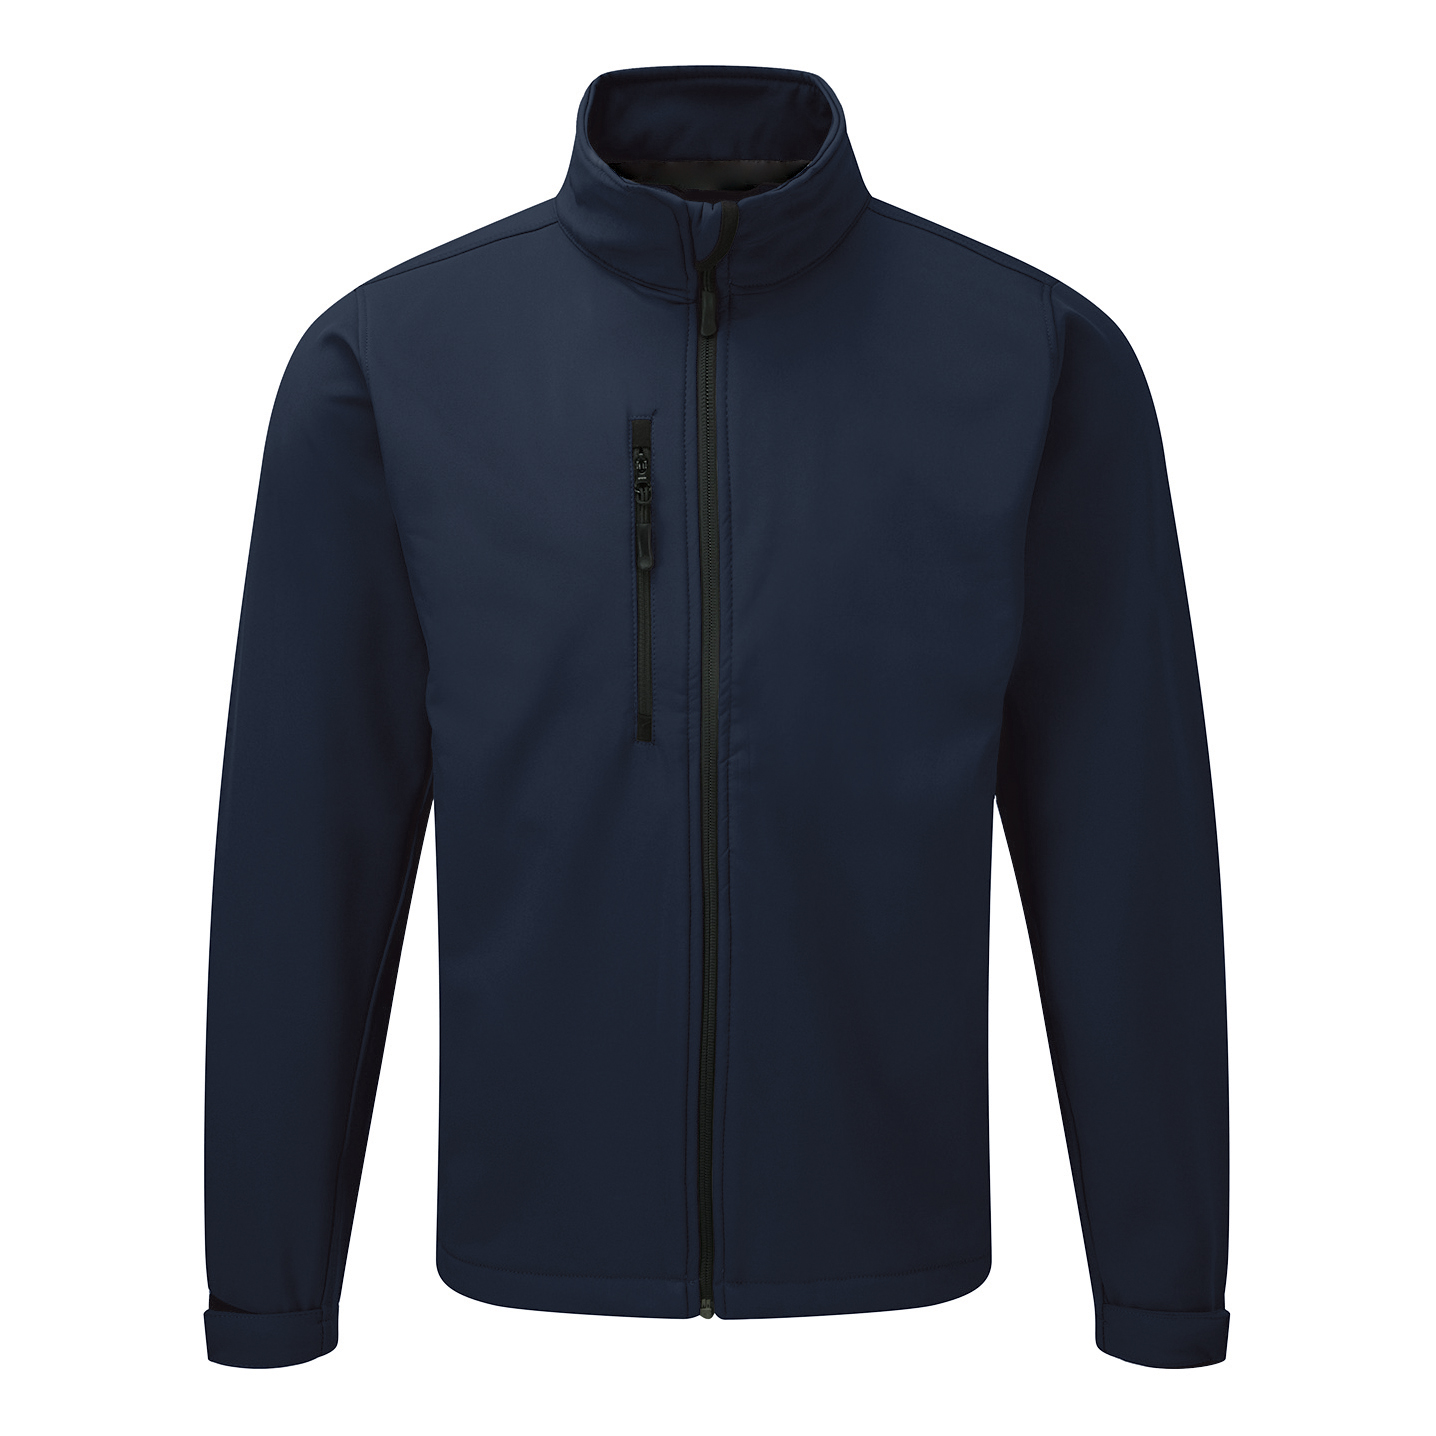 Jacket Soft Shell Water Resistant Breathable 320gsm 2XL Navy Blue